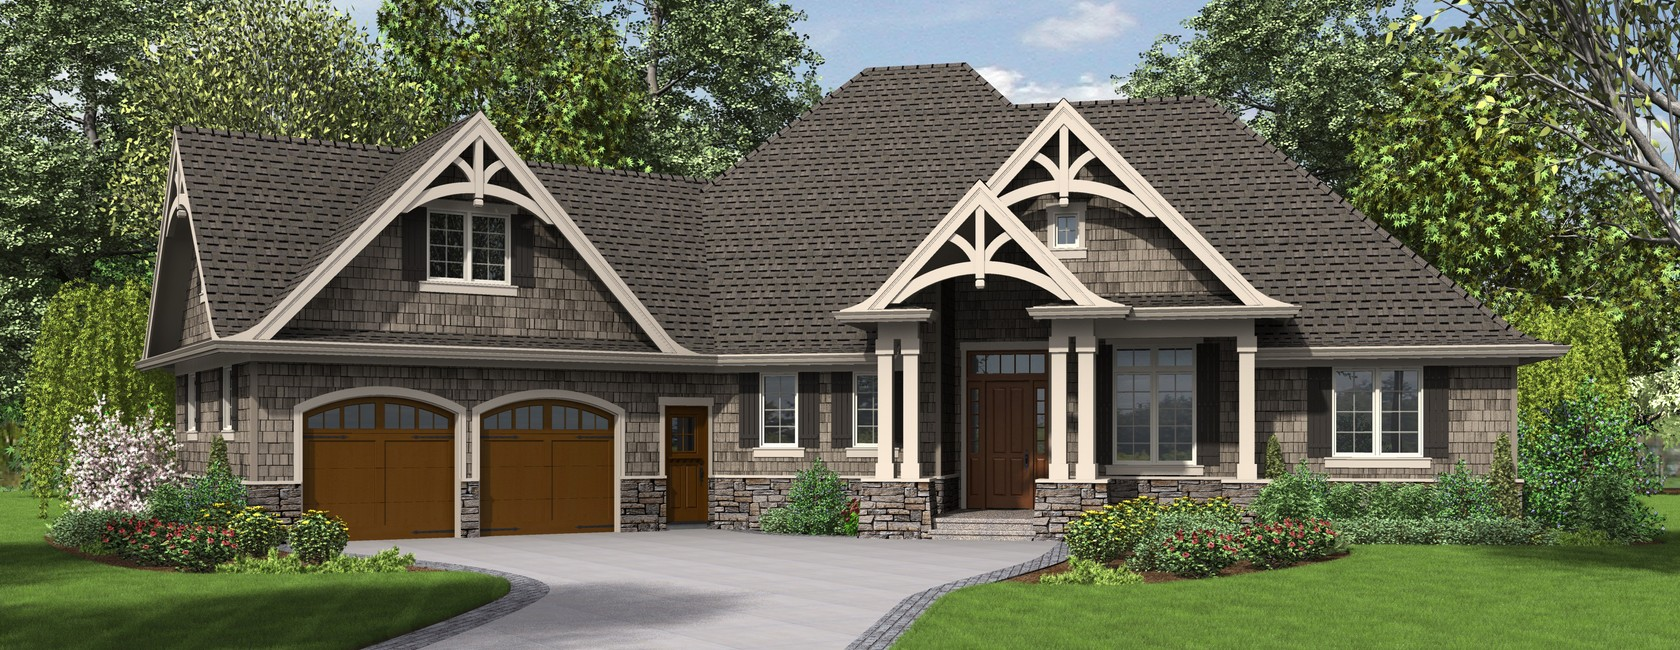 The ripley single story craftsman house plan with tons of for One story craftsman homes